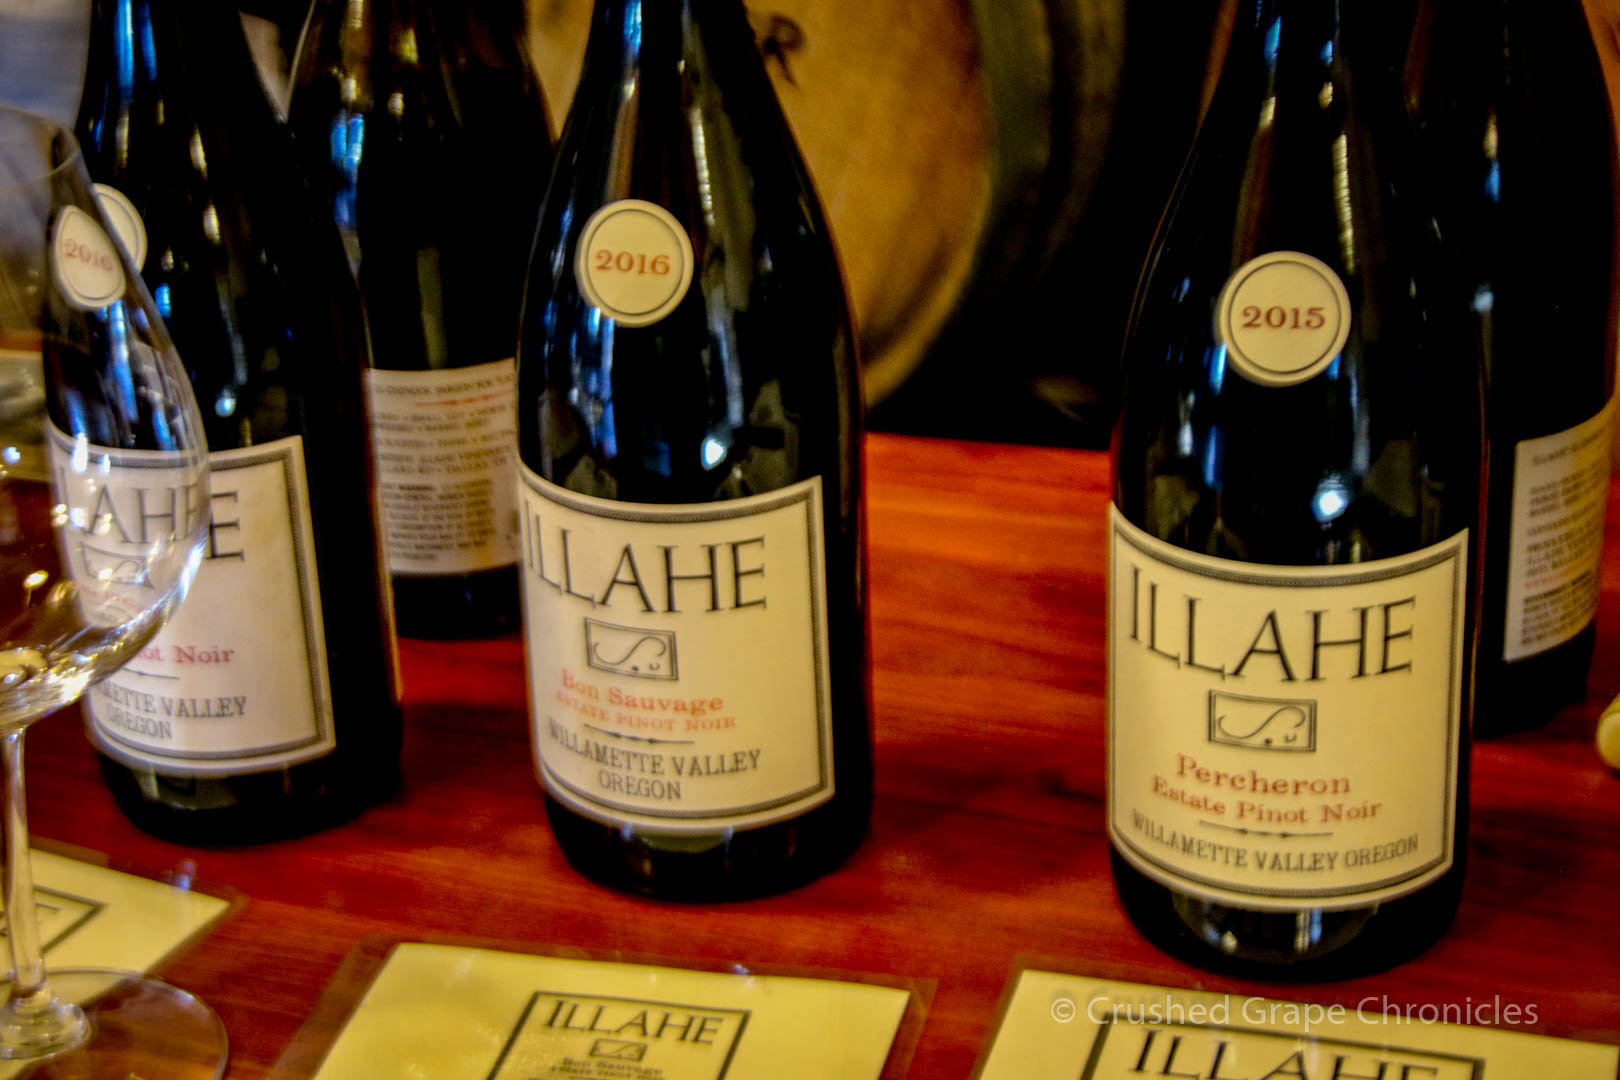 Illahe Vineyard Tasting room, Bottle Shots